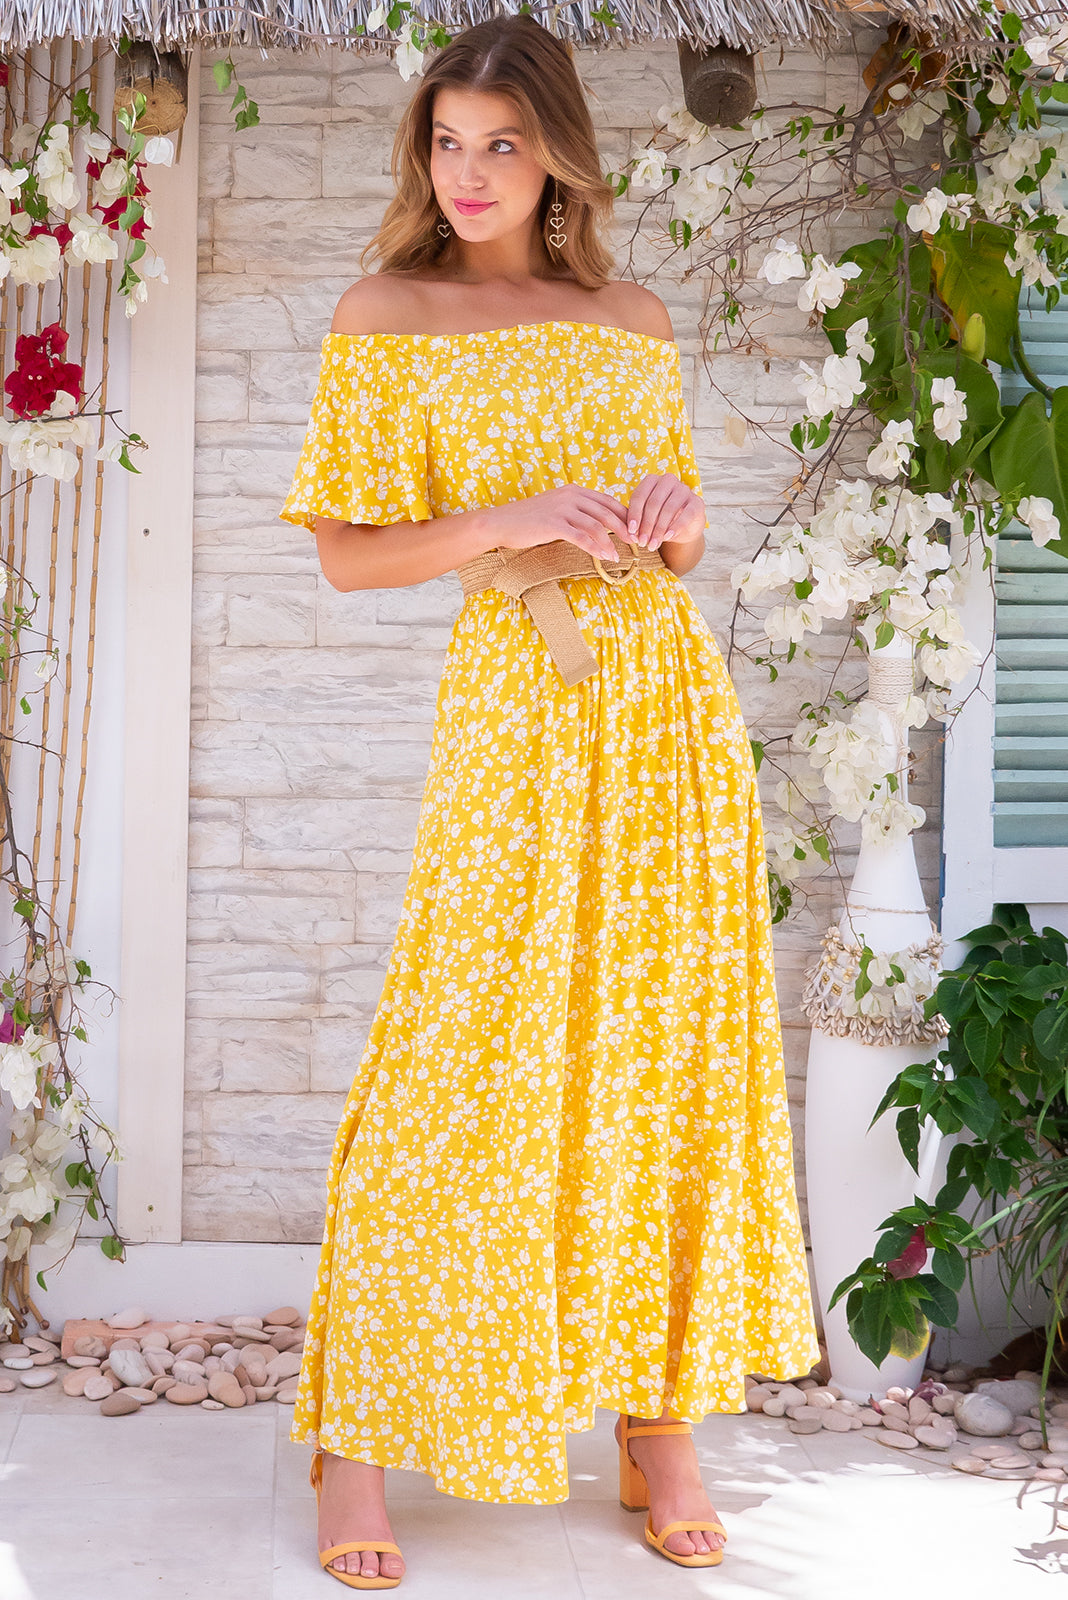 Surf Mist Sunshine Tipsy Maxi Dress, bohemian summer style, 100% rayon, slight flare at hem, soft elastic ruching gently holds dress across shoulders, side pockets, elastic waist, bright yellow base with small white floral print.